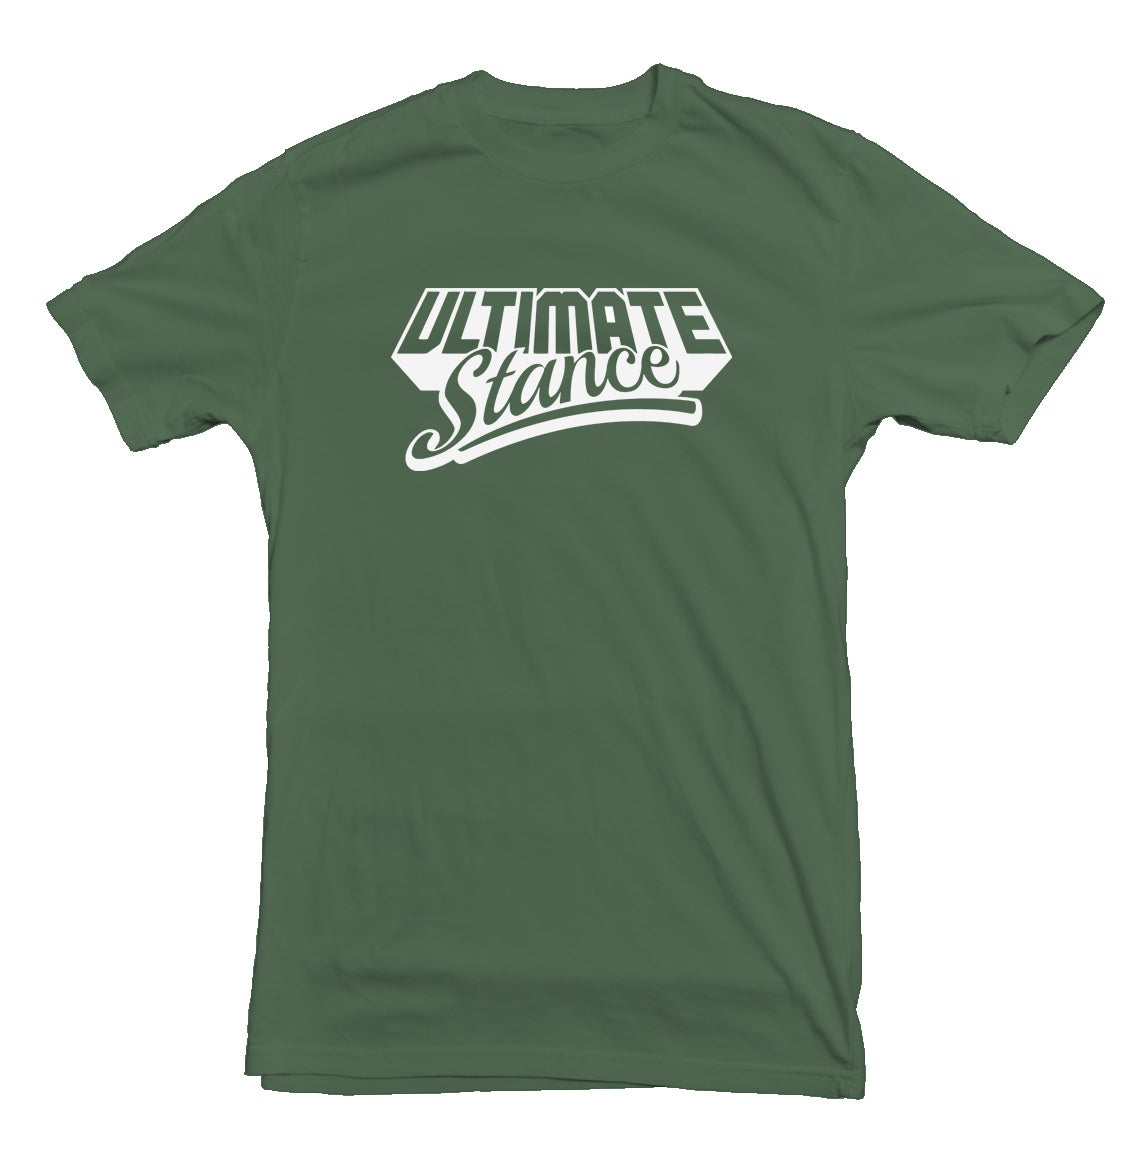 Image of Men's Ultimate Stance T-Shirt - Military Green with White Logo